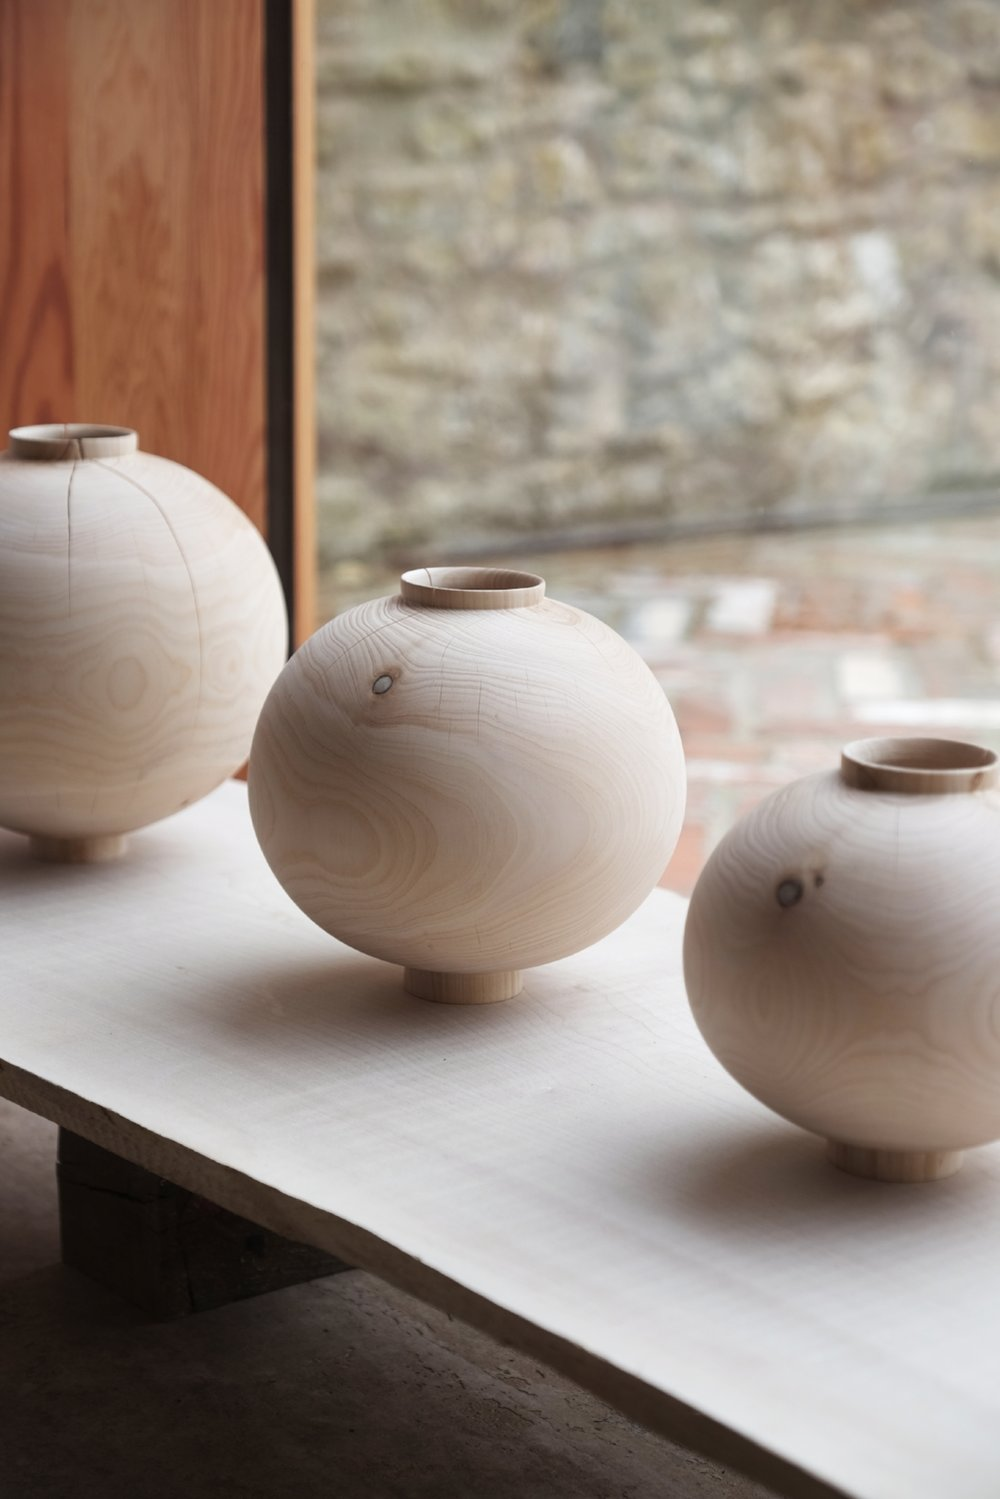 Cracked Moon Jars  | cedar wood | 2018   Installation View, Realising Landscape, The Space, Caro, Bruton